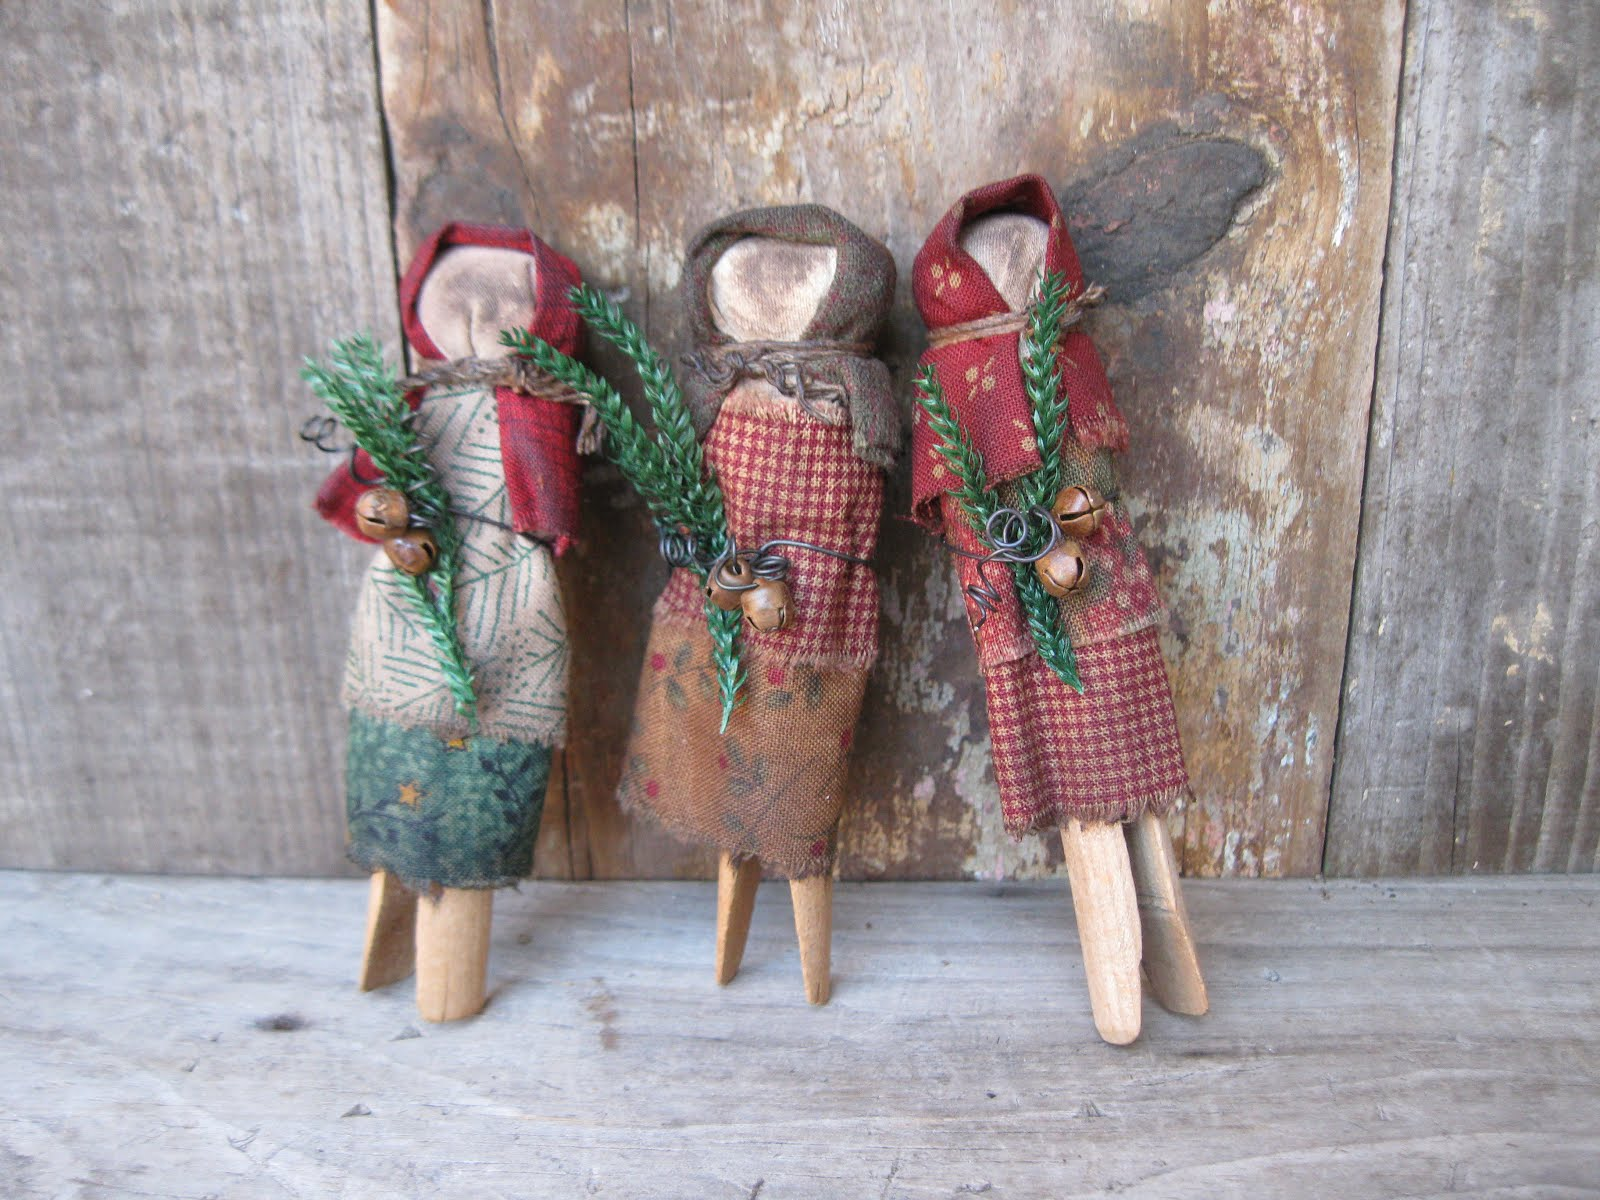 Primitives from the Iowa Prairie: Clothespin Dolls are Done!